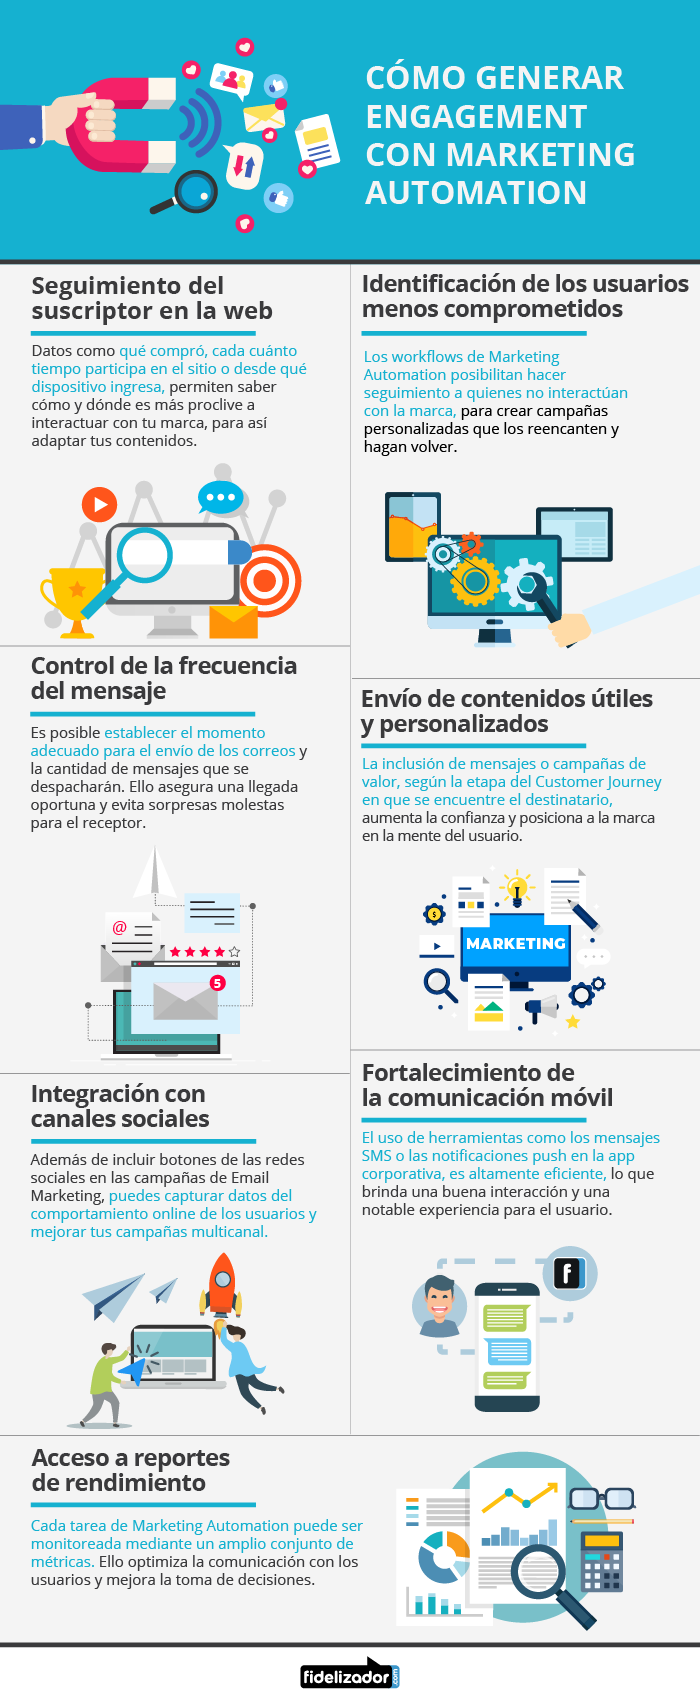 Cómo generar engagement con Marketing Automation